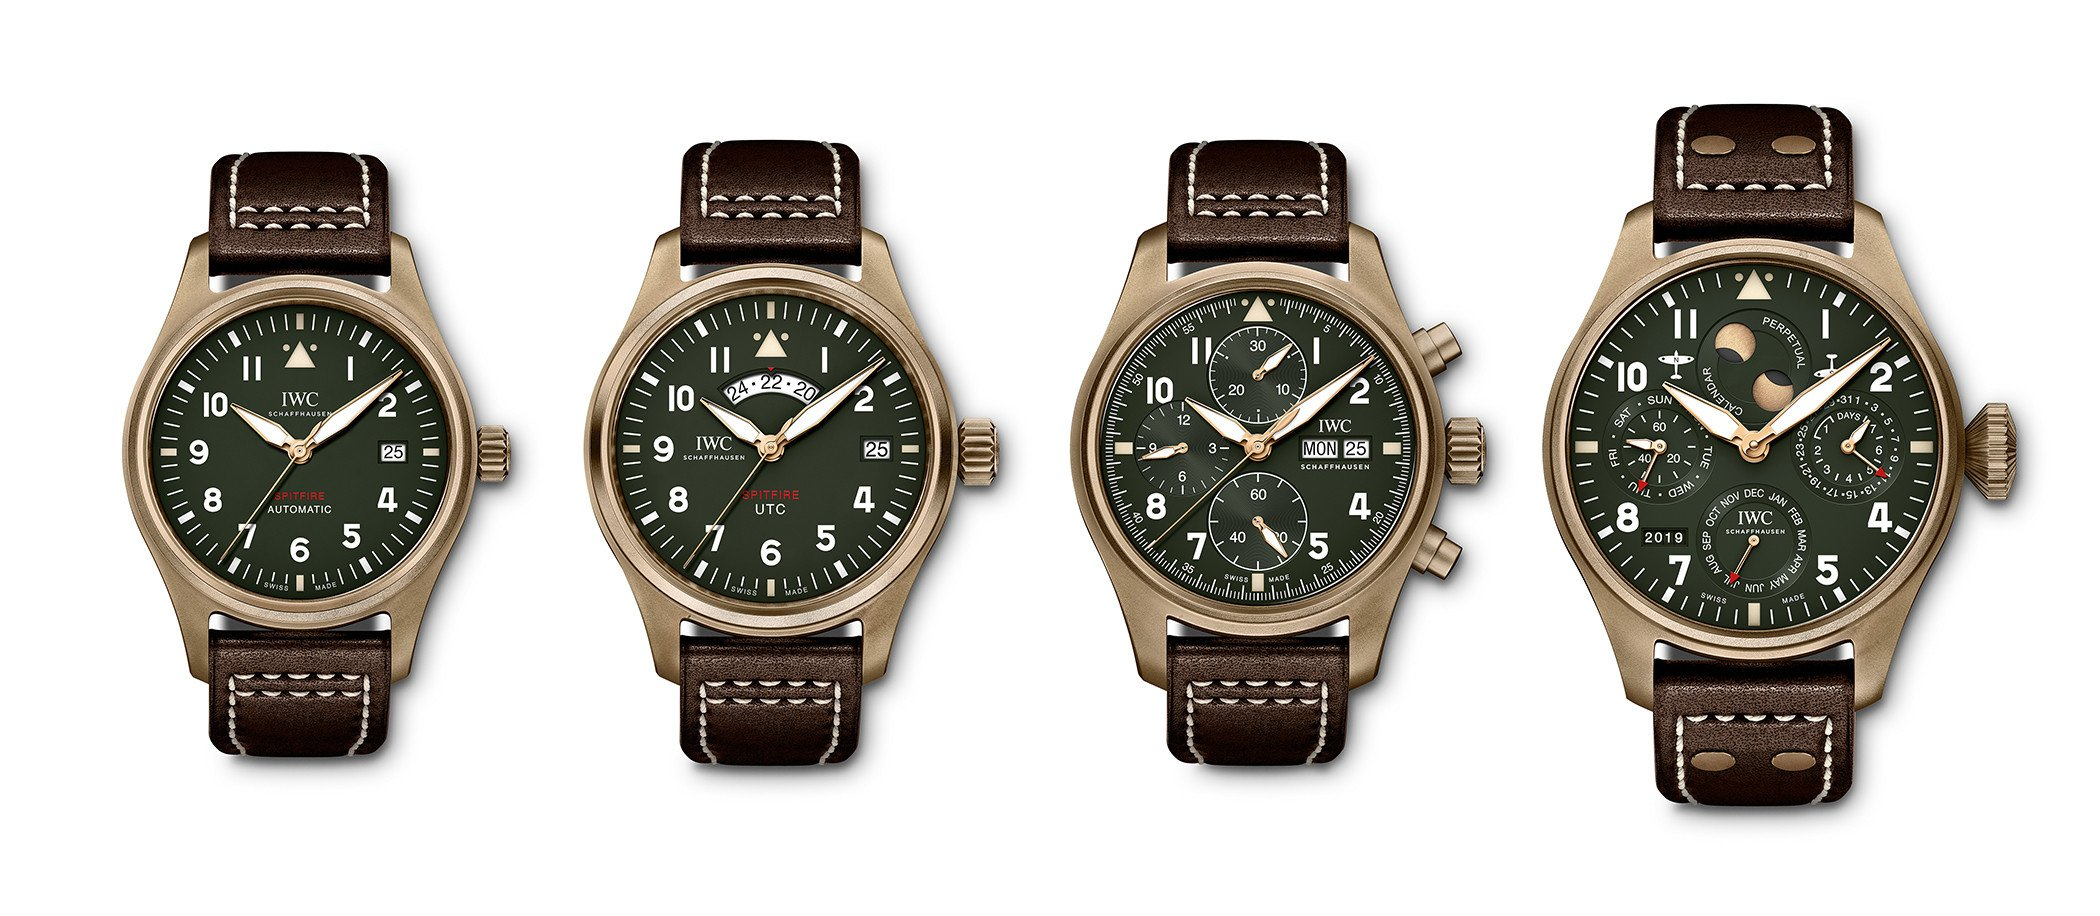 IWC Pilot's Watch Spitfire